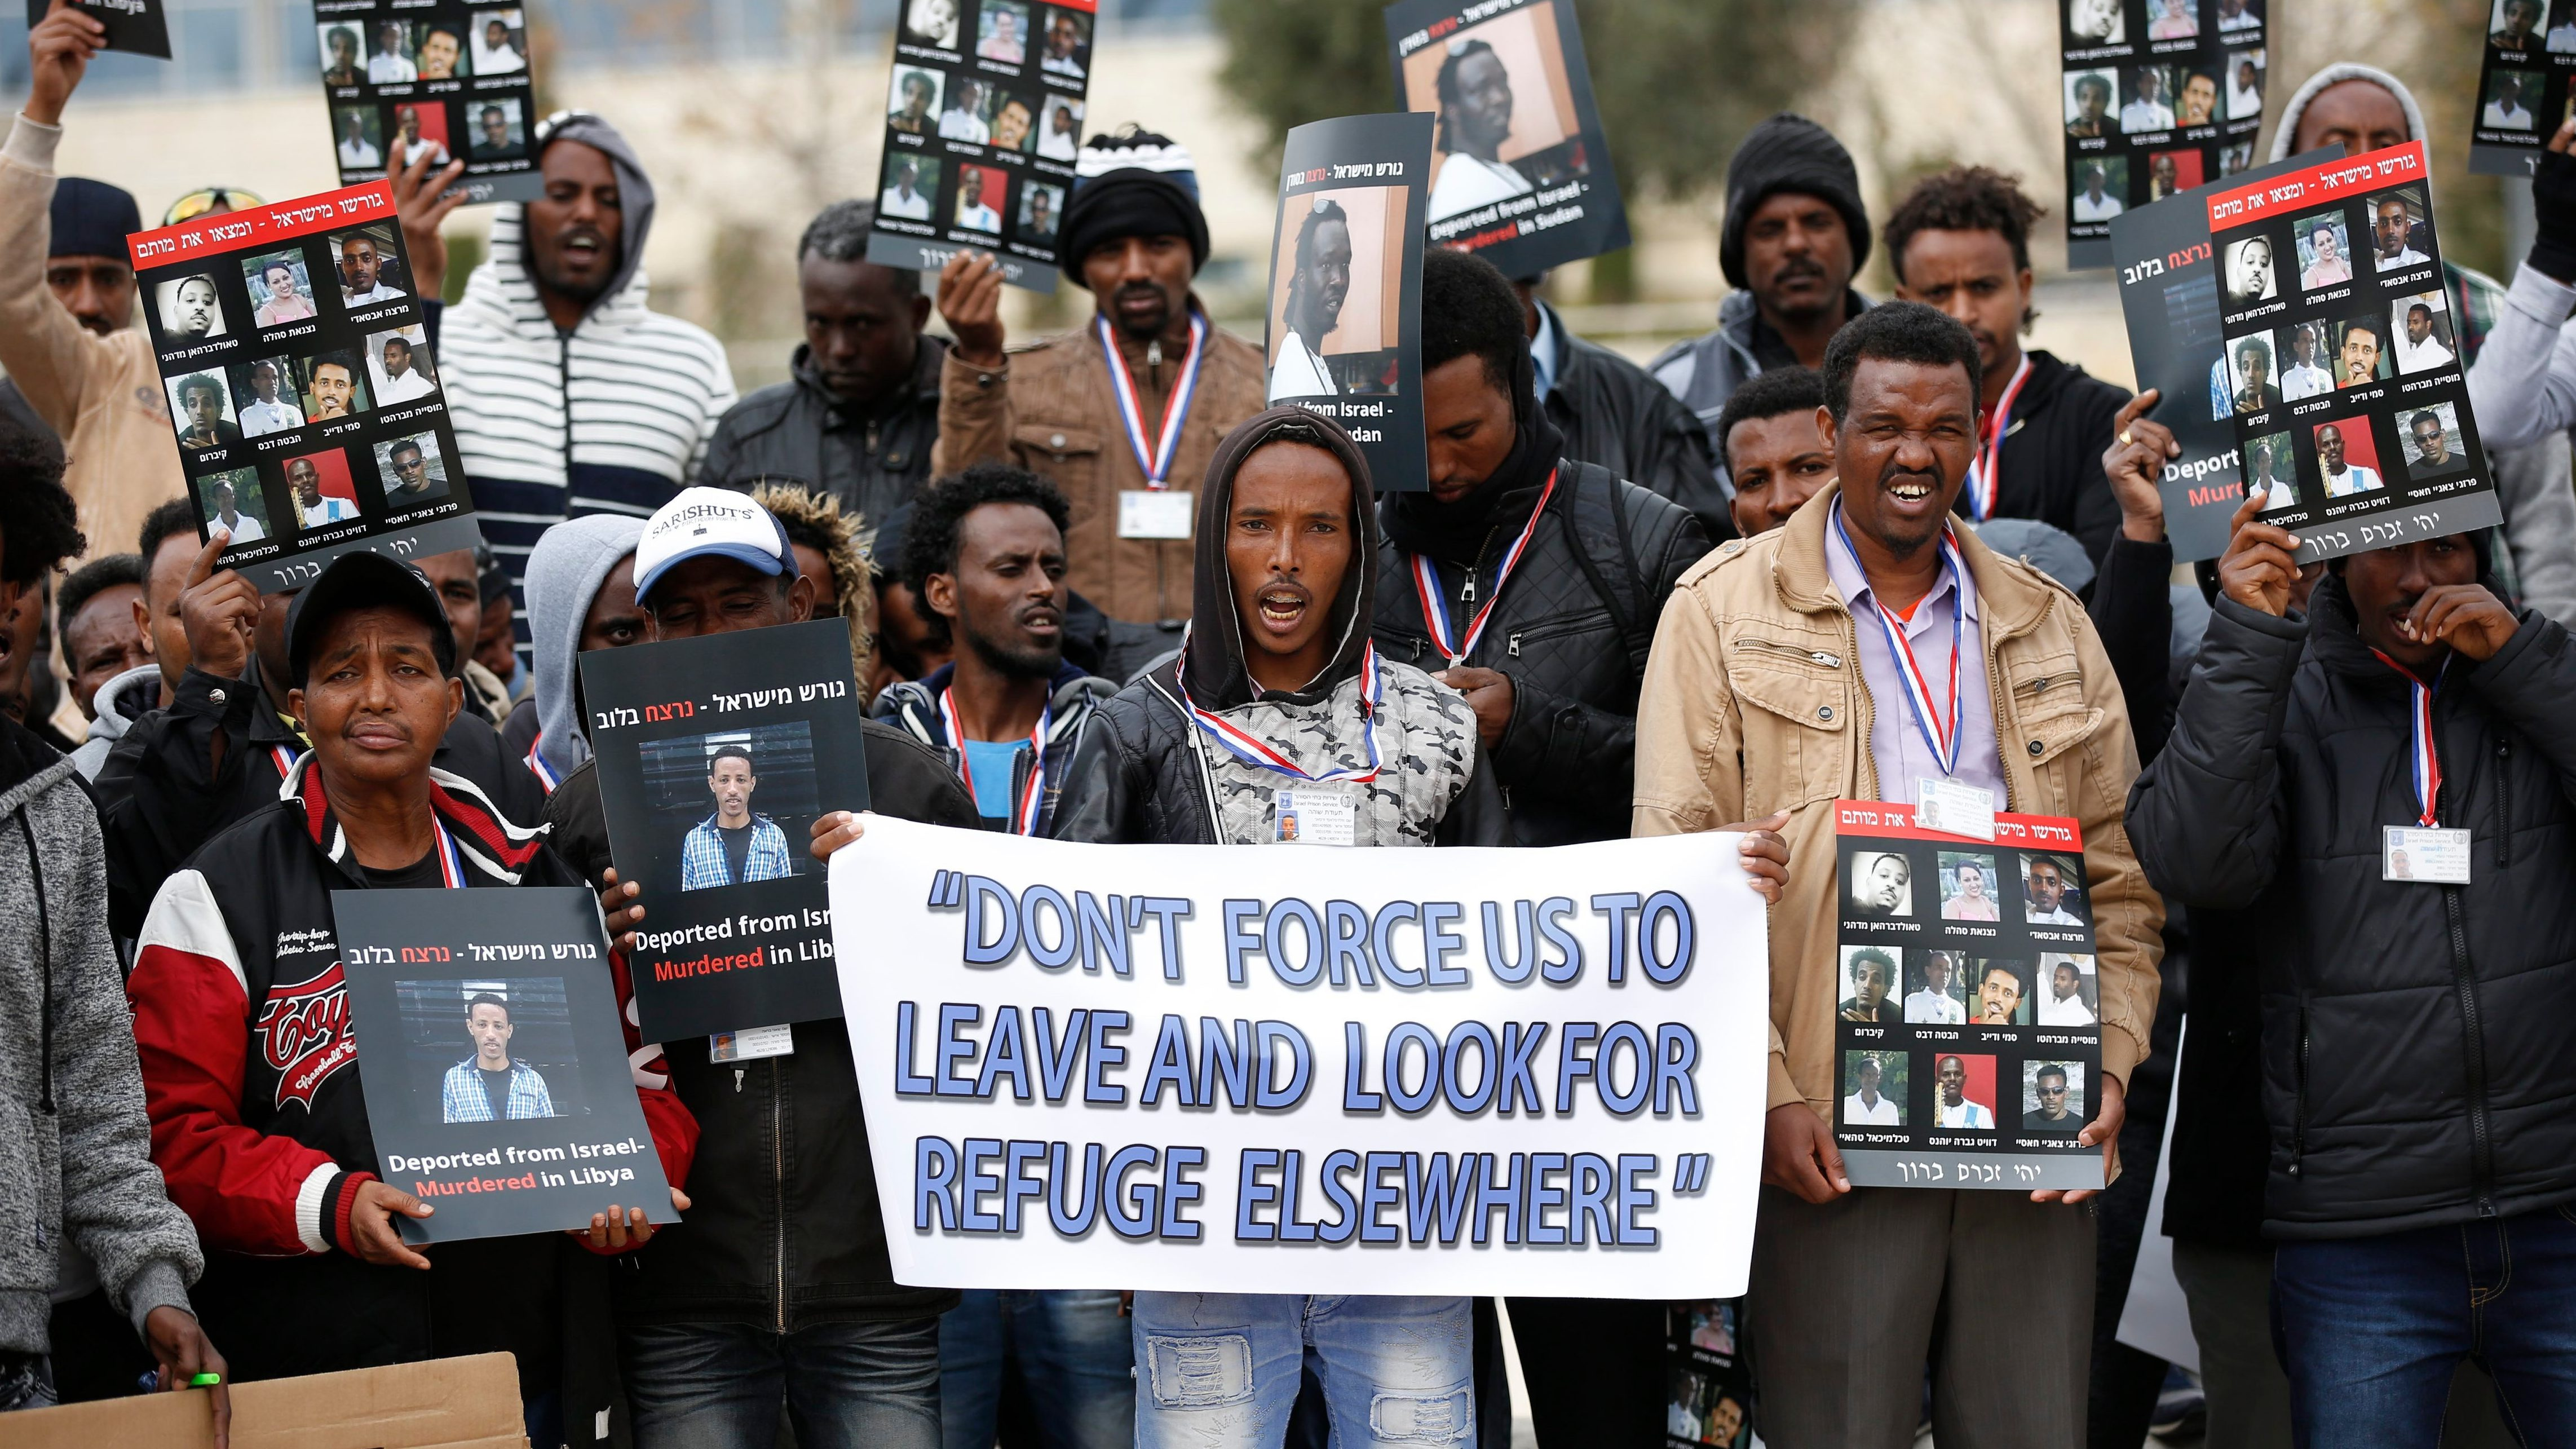 African asylum seekers protest in front of the Israeli Supreme Court, in Jerusalem, Israel, 26 January 2017. Hundreds of African migrants from Eritrea held a protest outside the Israeli Supreme Court calling not to deport them back to their countries as  they seek refugee status.